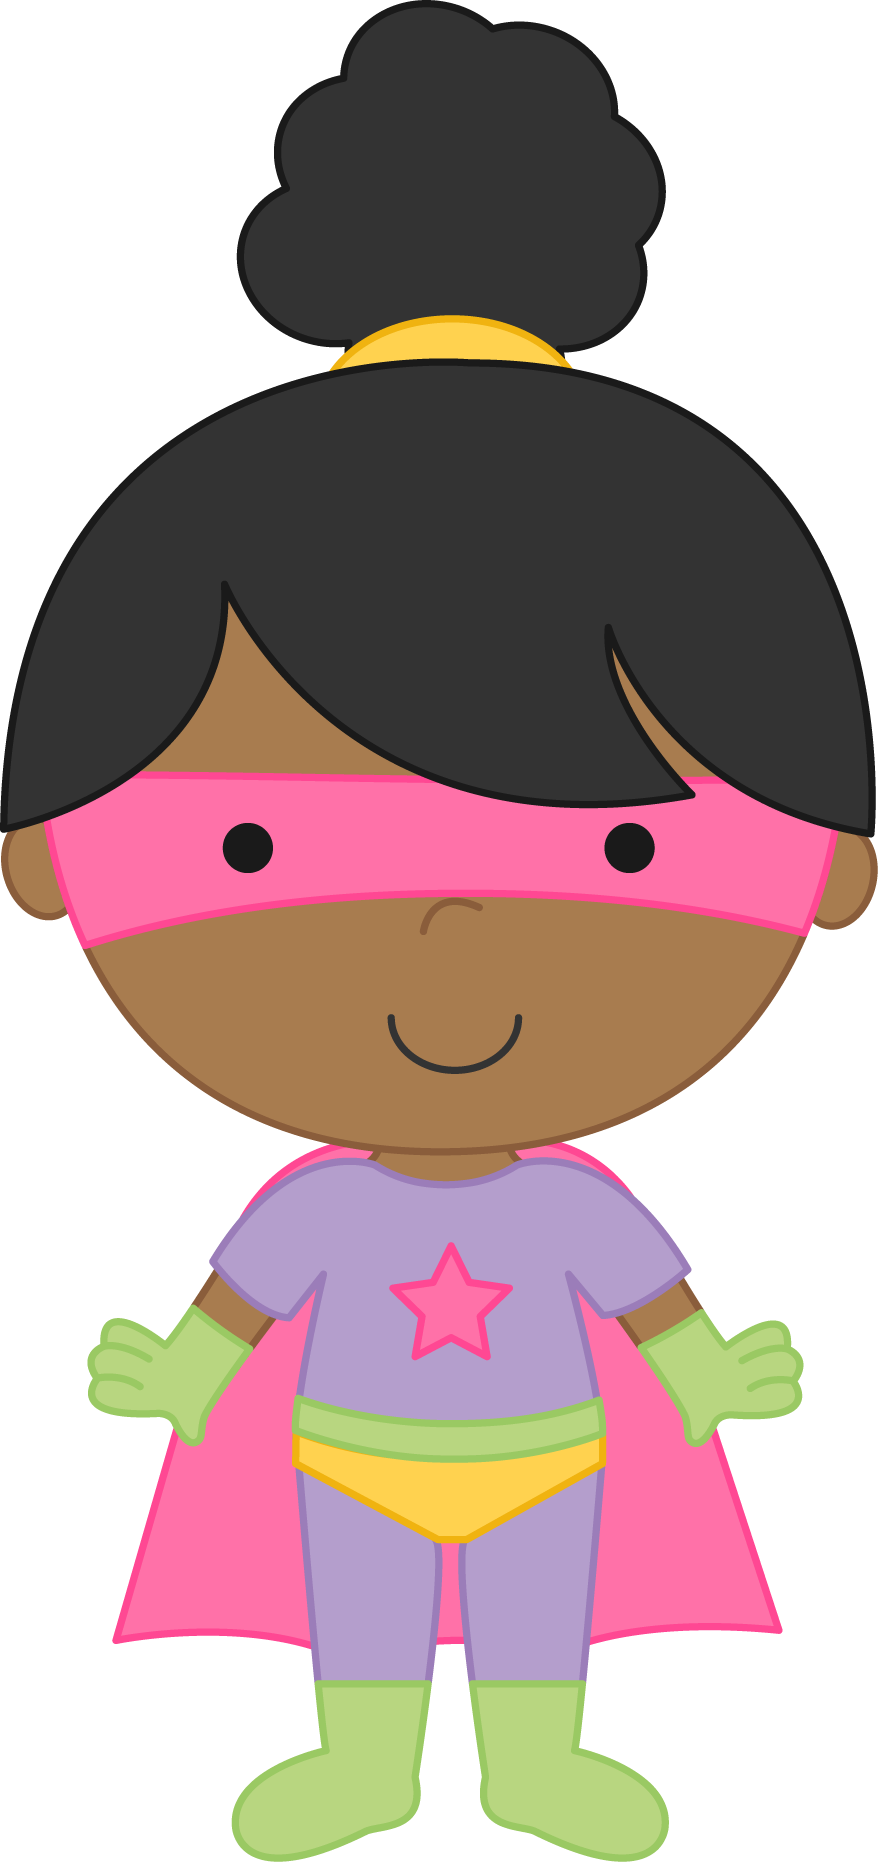 Nurse clipart hero. Printable clip arts for